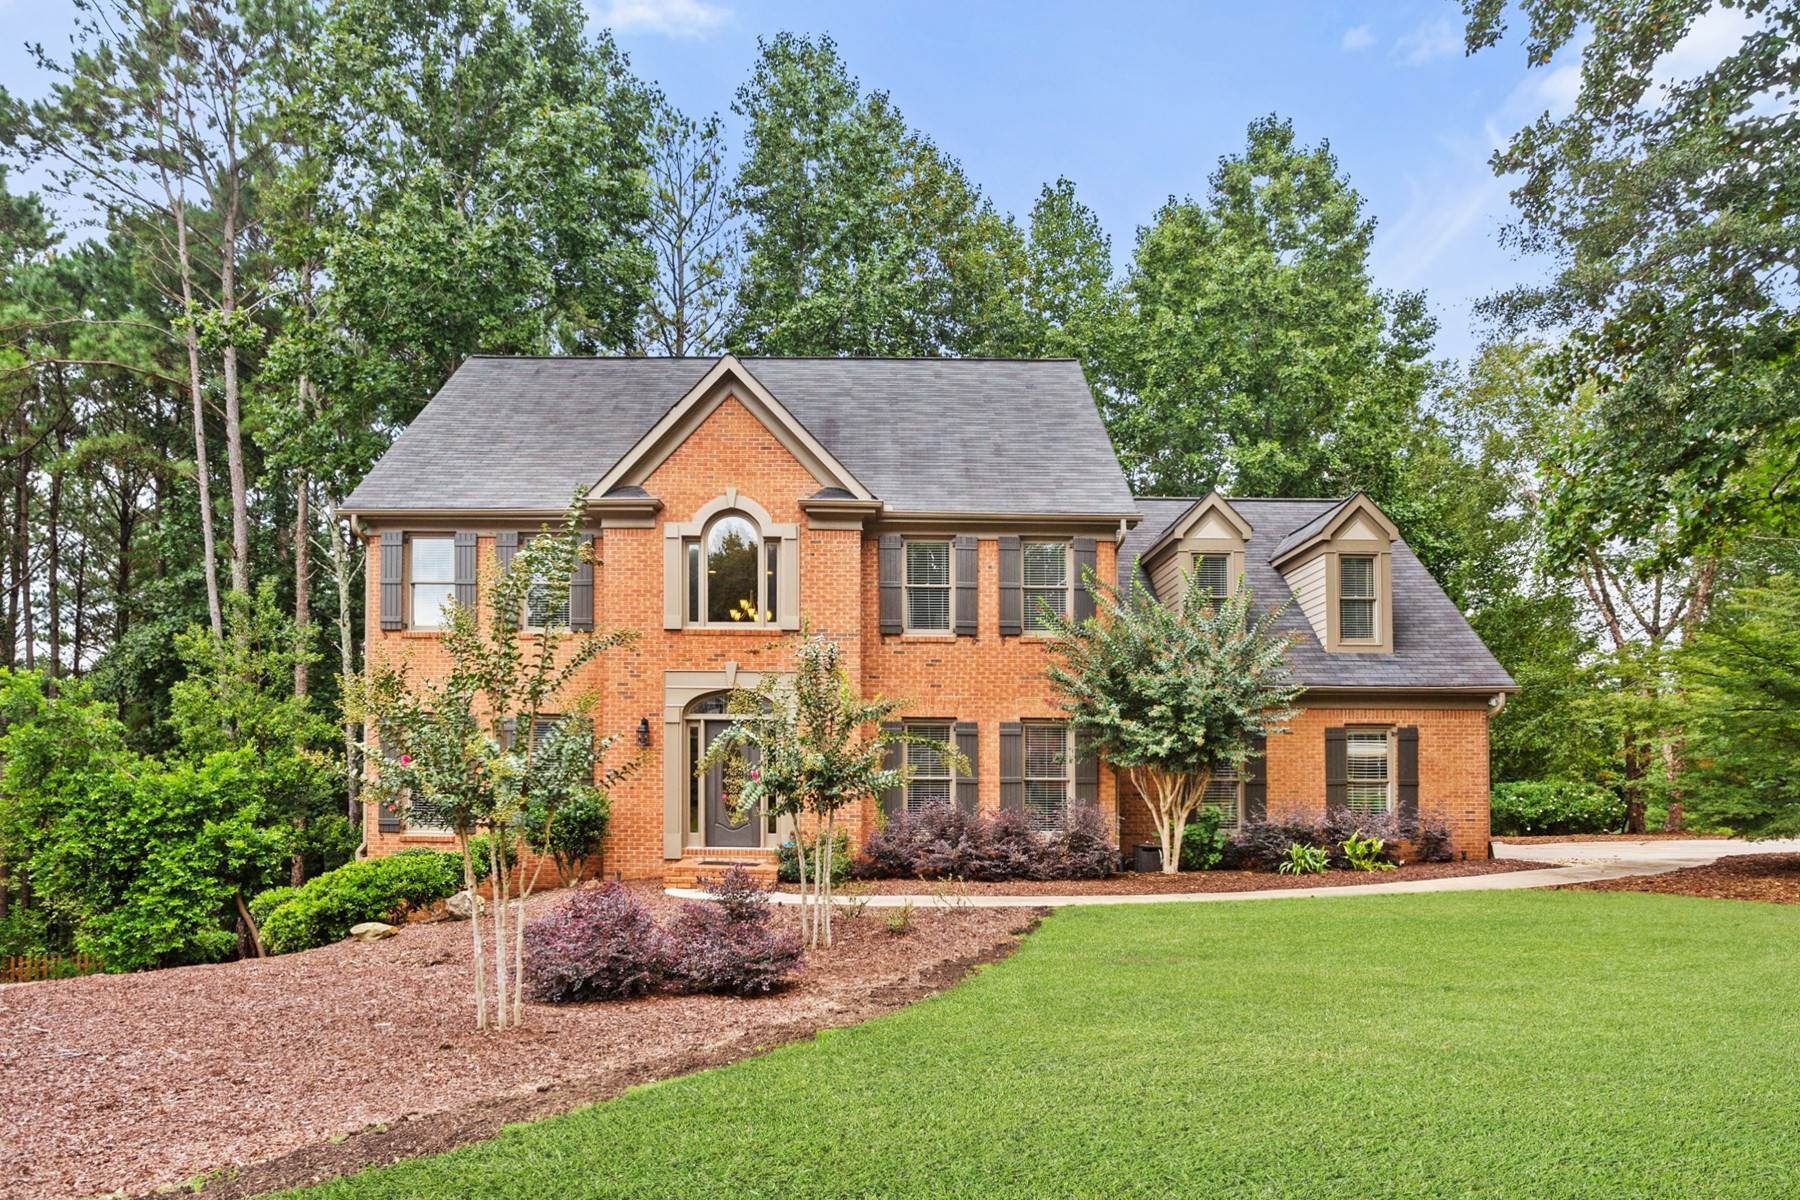 Single Family Homes for Sale at Turn-key Bradshaw Farm Home 401 Jessica Lane Woodstock, Georgia 30188 United States